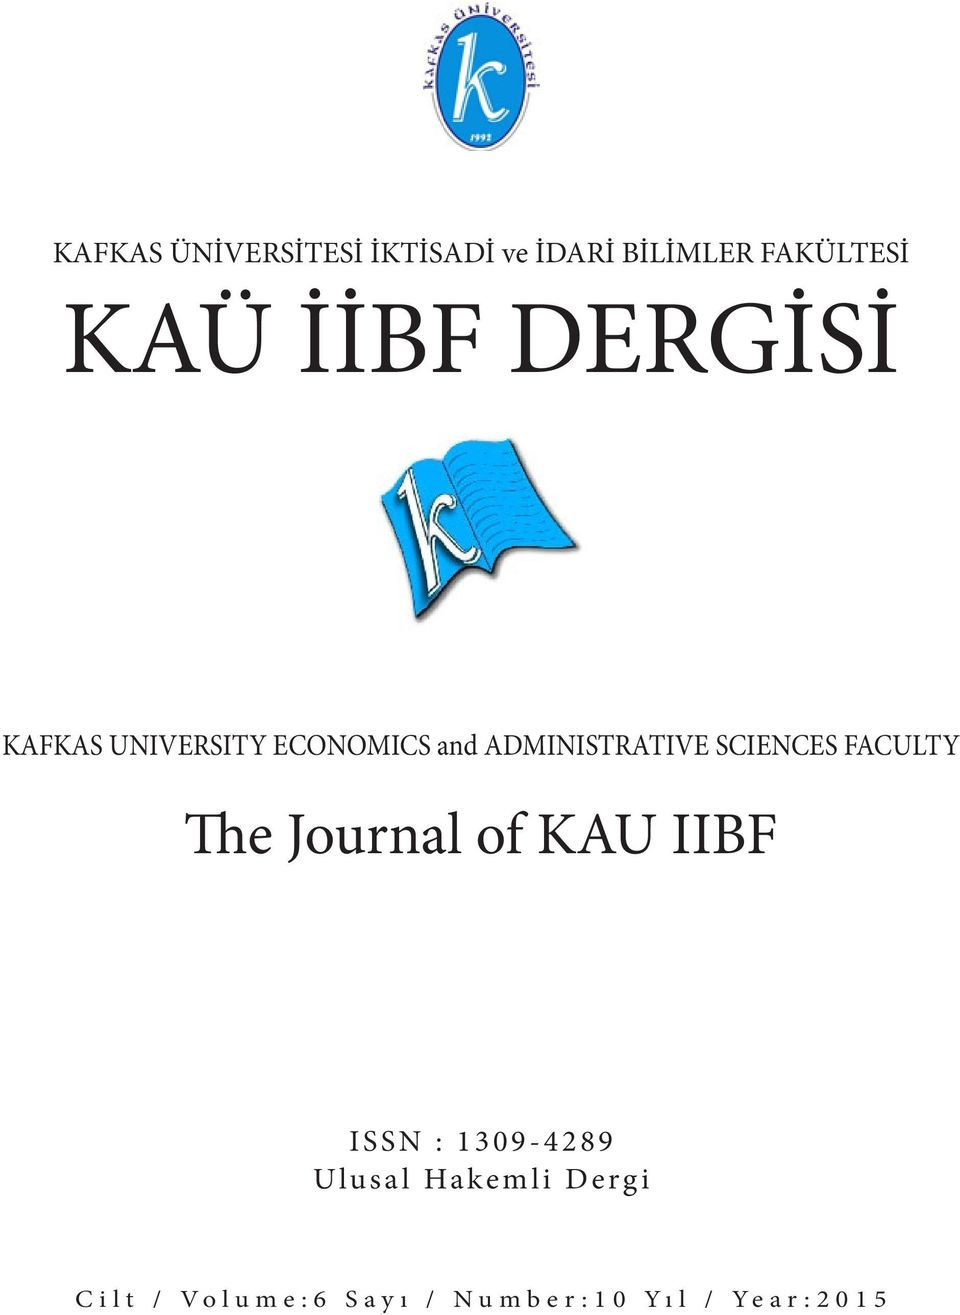 SCIENCES FACULTY The Journal of KAU IIBF ISSN : 1309-4289